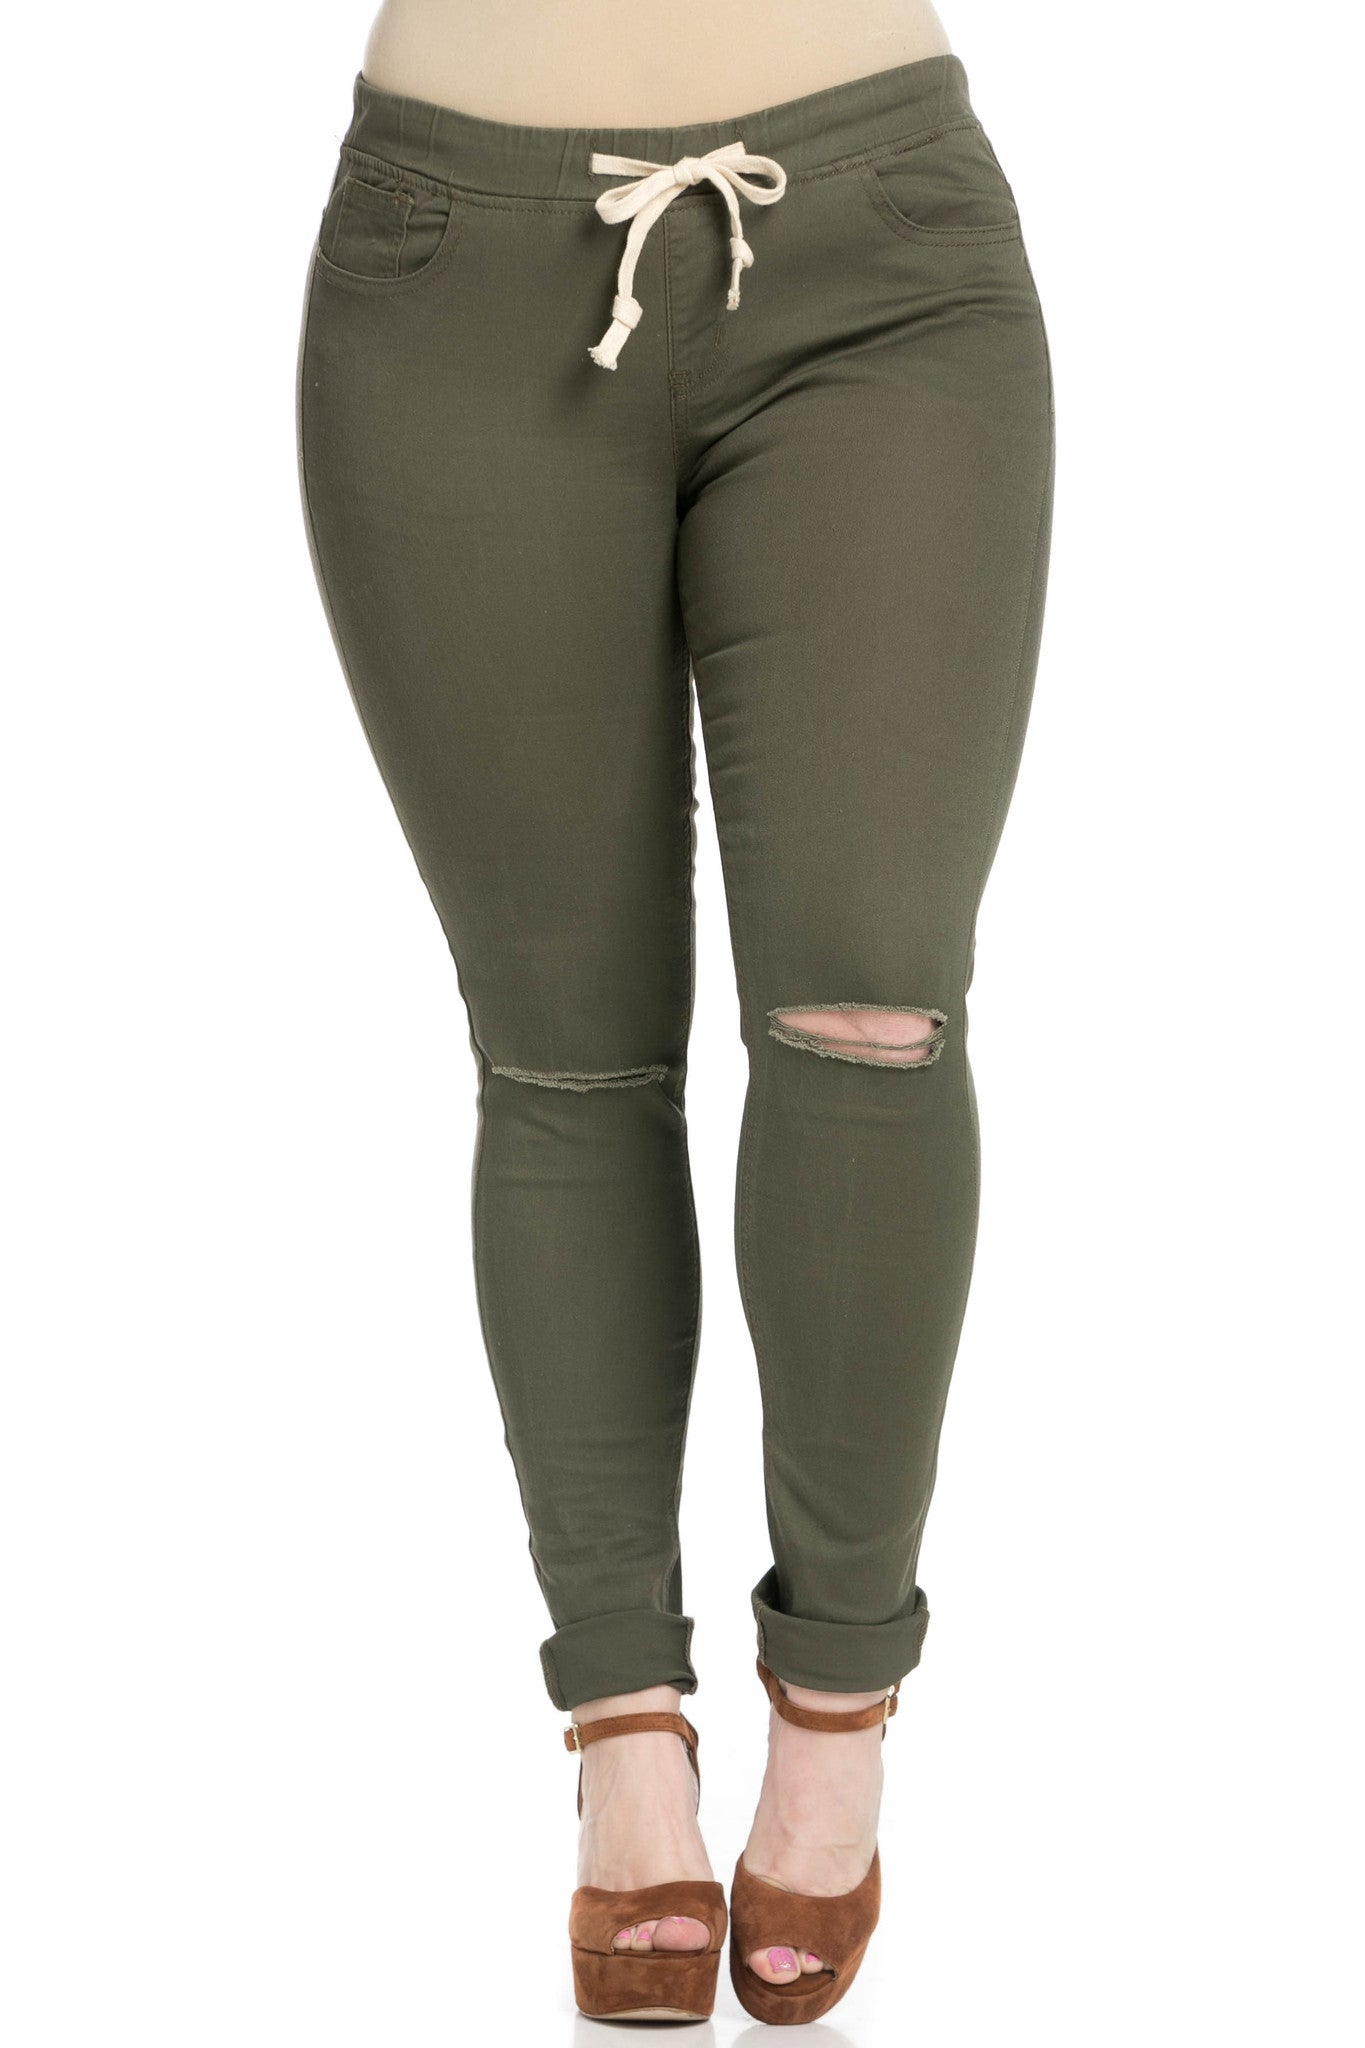 Destroyed Olive Skinny Jogger Jeans - Pants - My Yuccie - 12